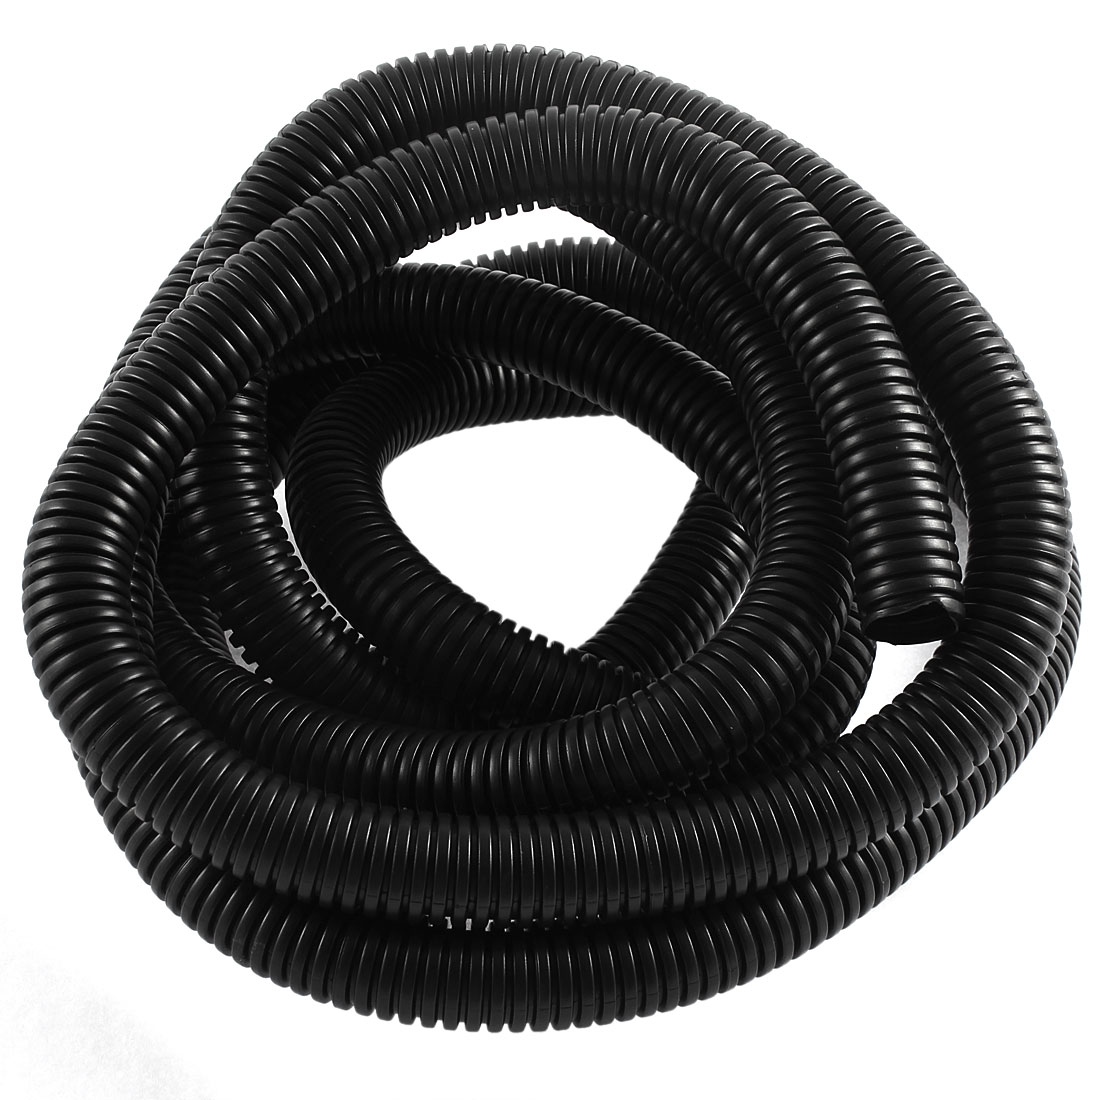 12ft Pvc Flexible Corrugated Tubing Wire Cable Conduit Tube Pipe Wiring 145 X 185mm